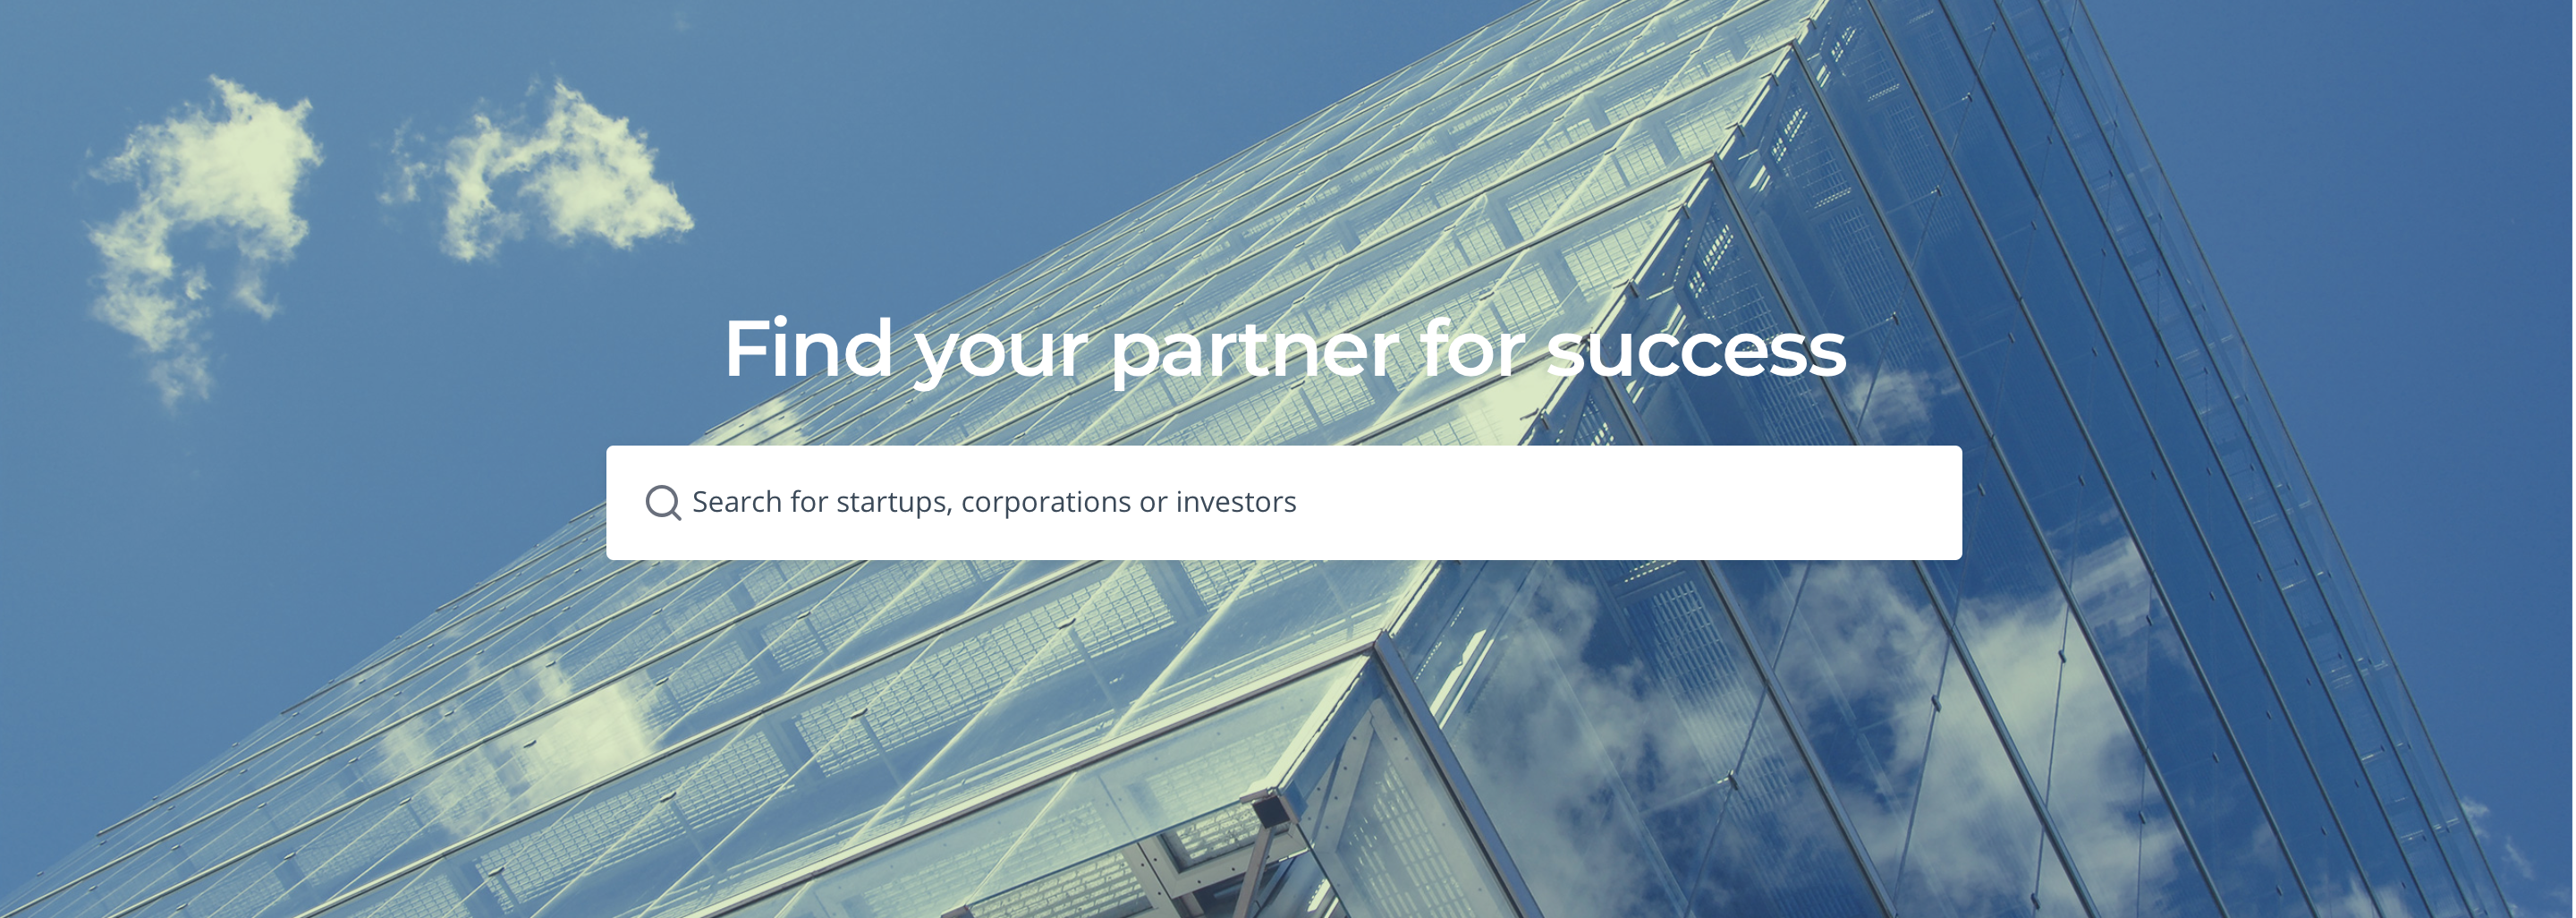 Launchpad matchmaking platform connects startups with the right investors and corporations